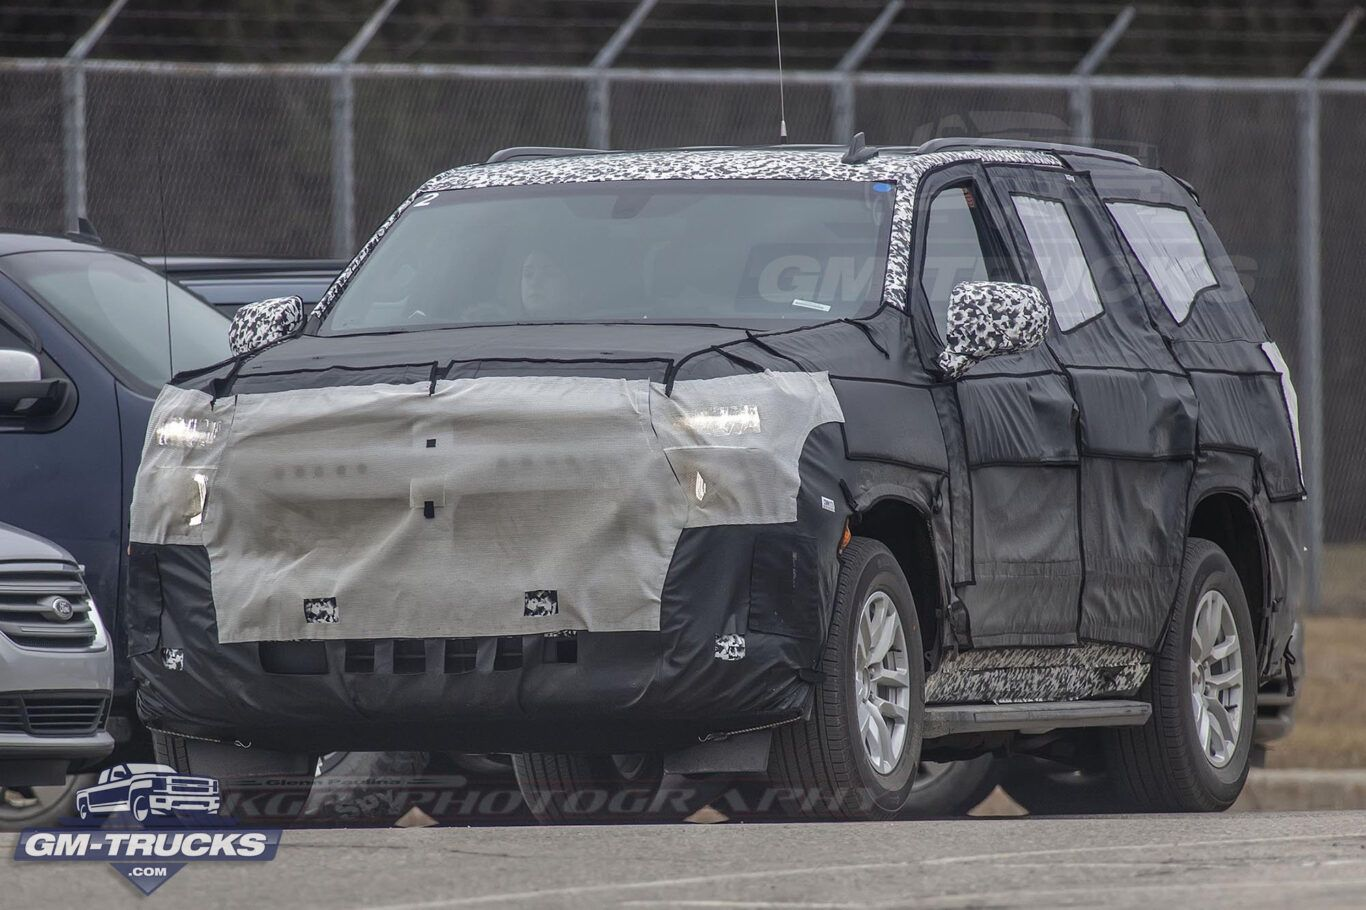 2021 Chevy Suburban Review, Redesign, Engine, Photos